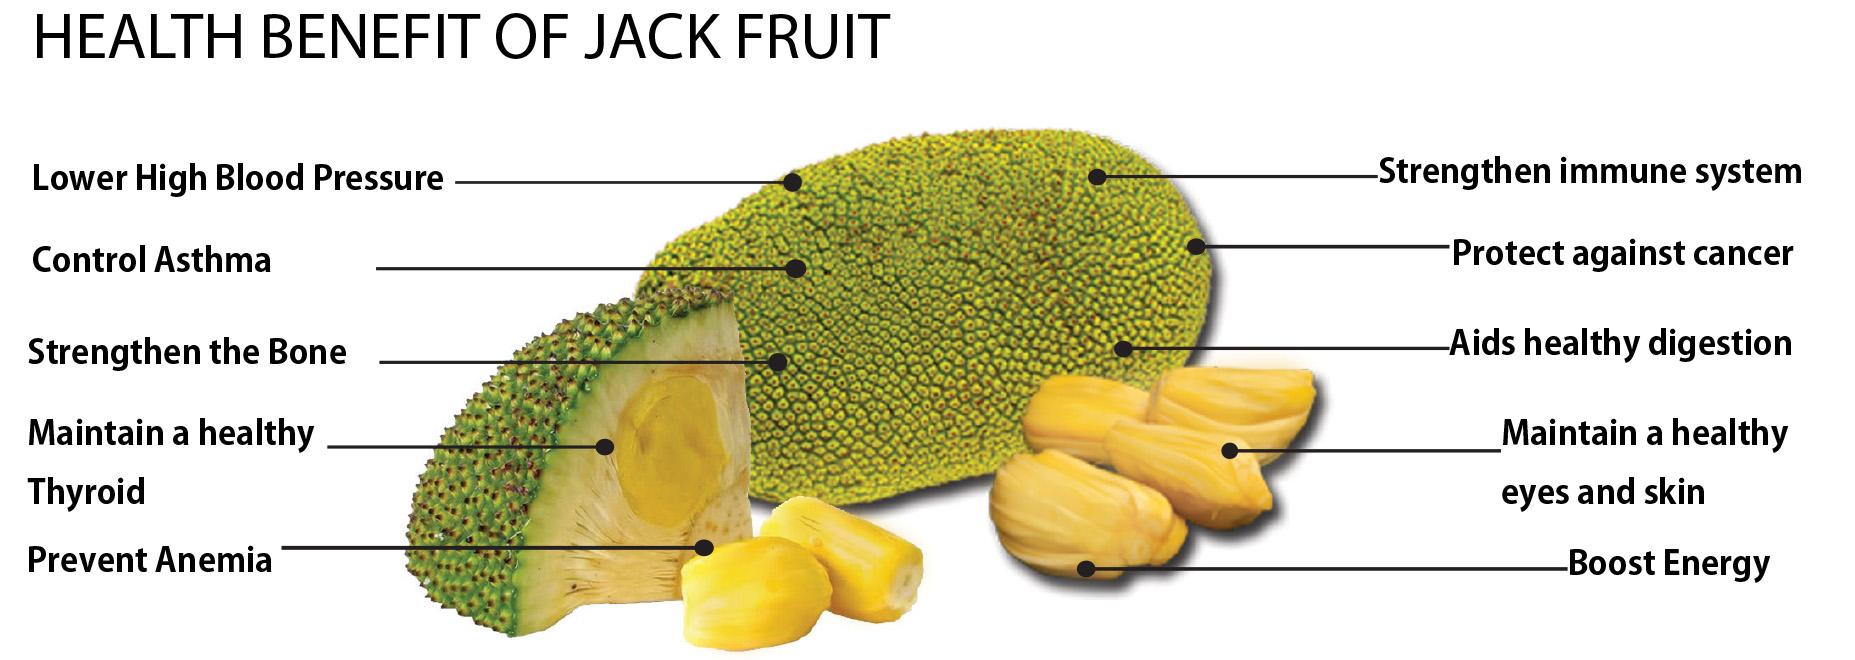 Can Cats Eat Jackfruit